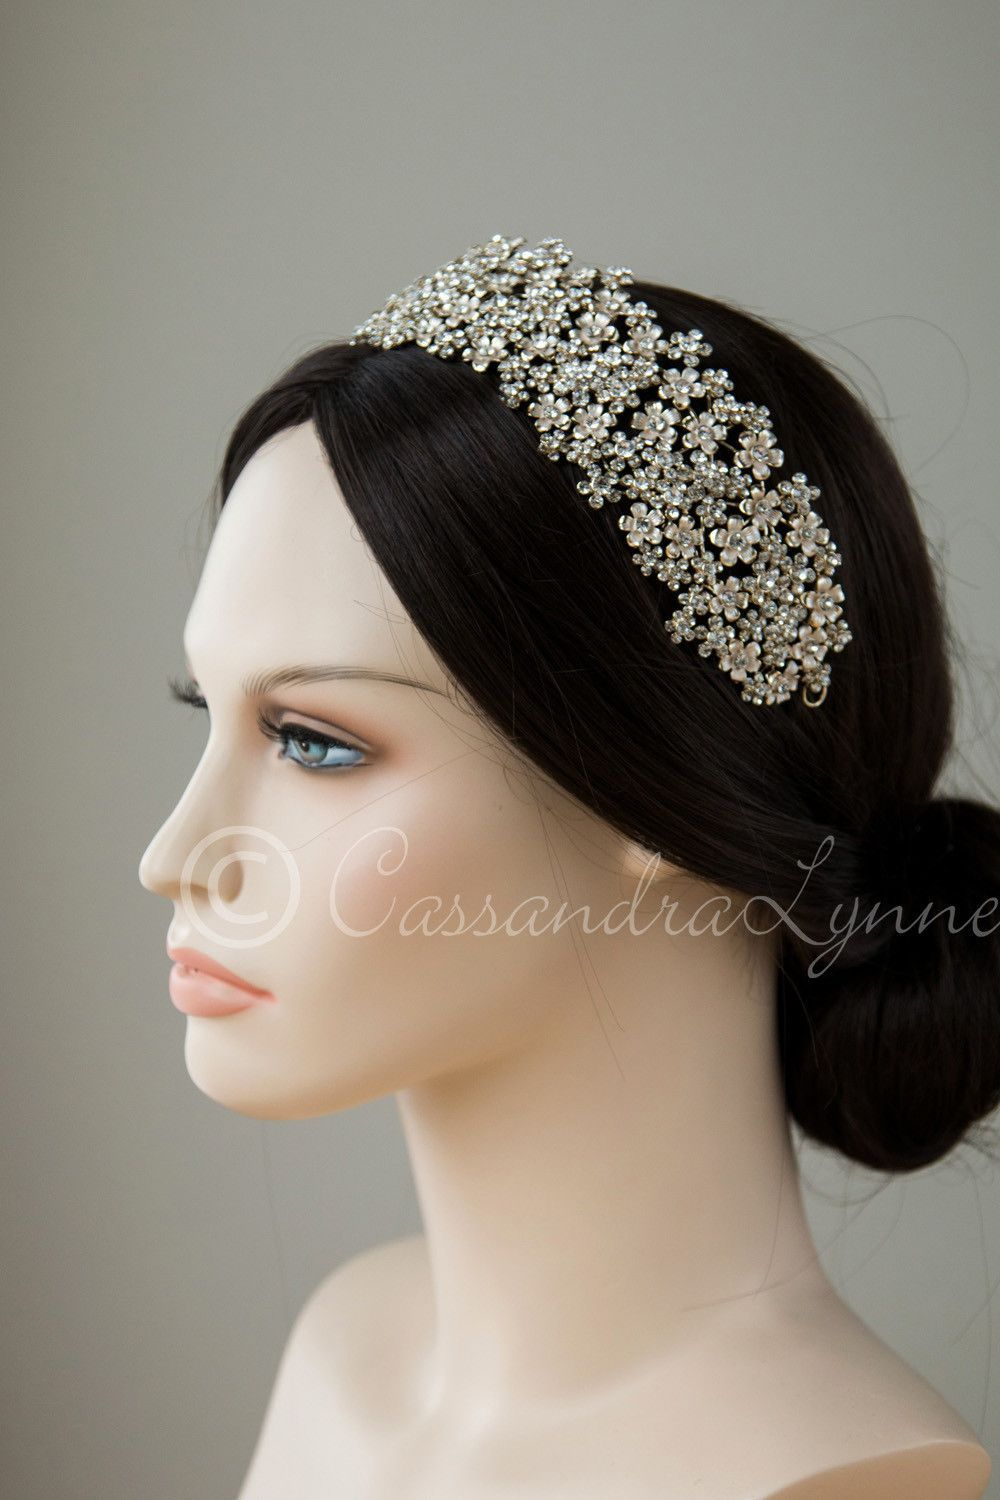 Wide Wedding Headpiece Of Frosted Flowers In 2020 Gold Hair Accessories Wedding Wedding Headpiece Wedding Hair Accessories